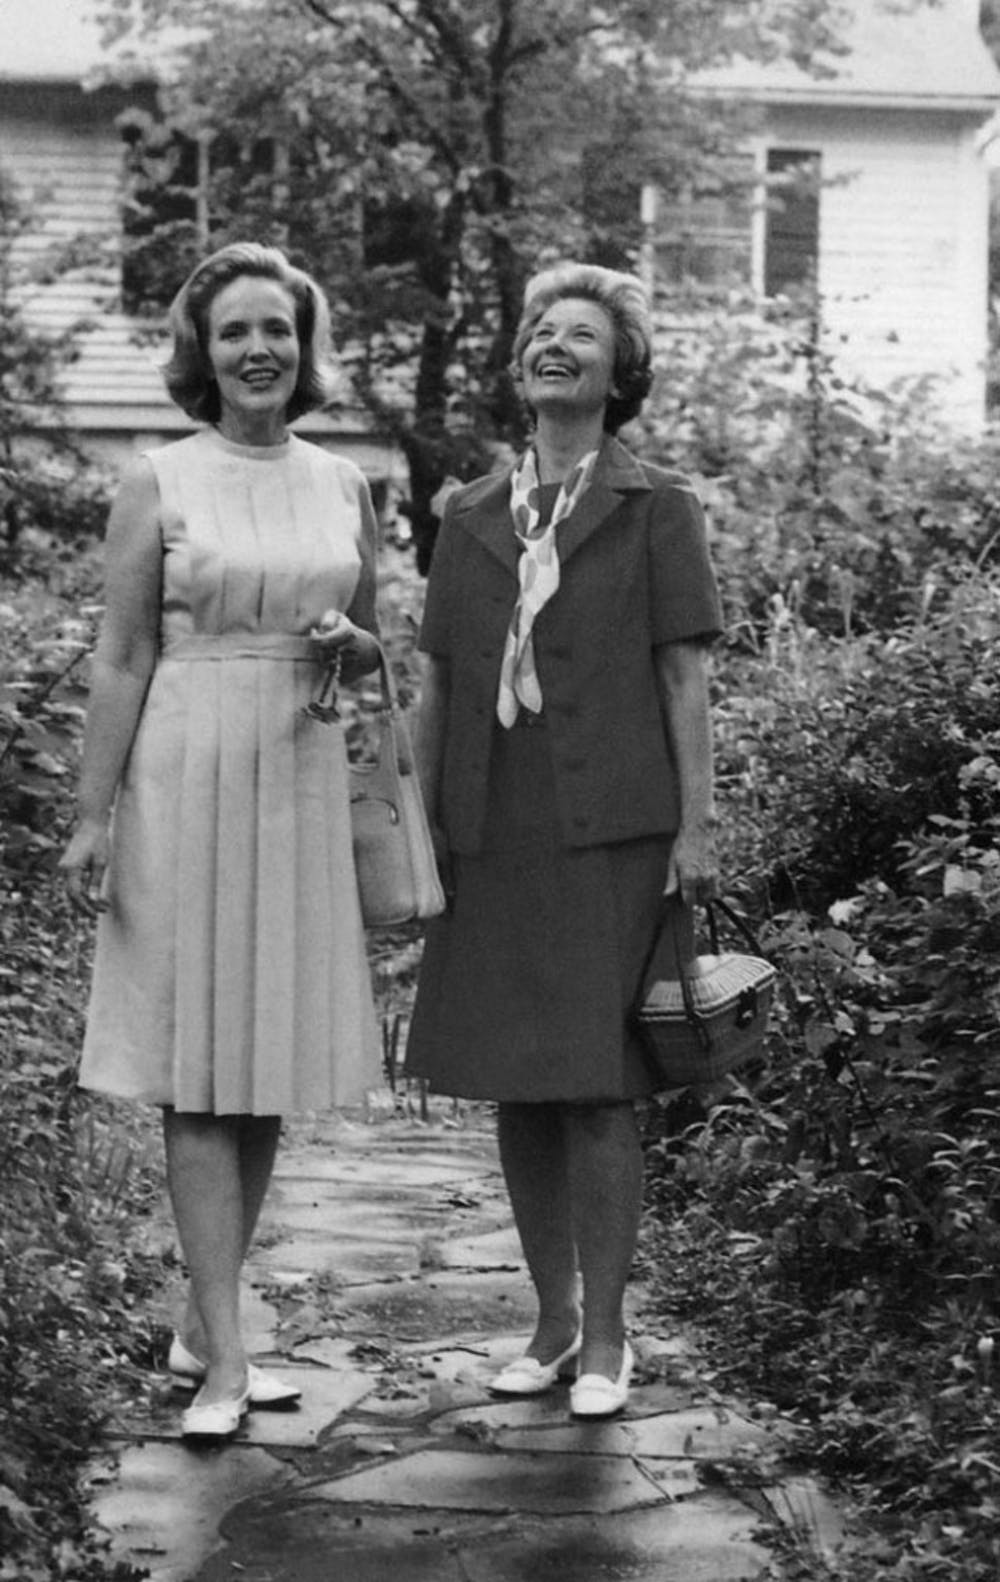 Georgia Kyser, left, and Ida Friday, right, founded the Preservation Society of Chapel Hill in 1972. She was a model and an actress.